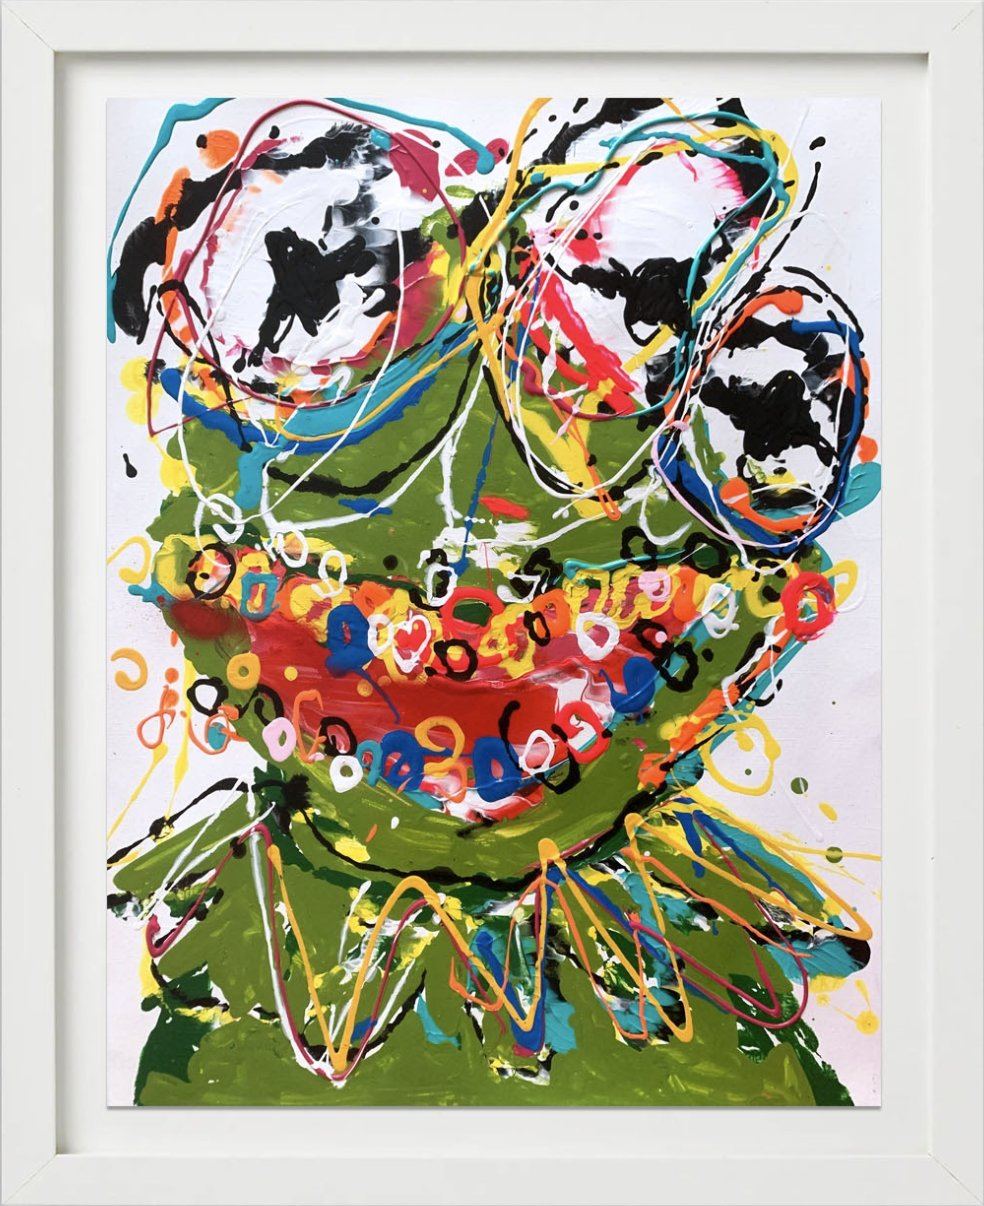 Before You Leap No. 2 by John Paul Fauves